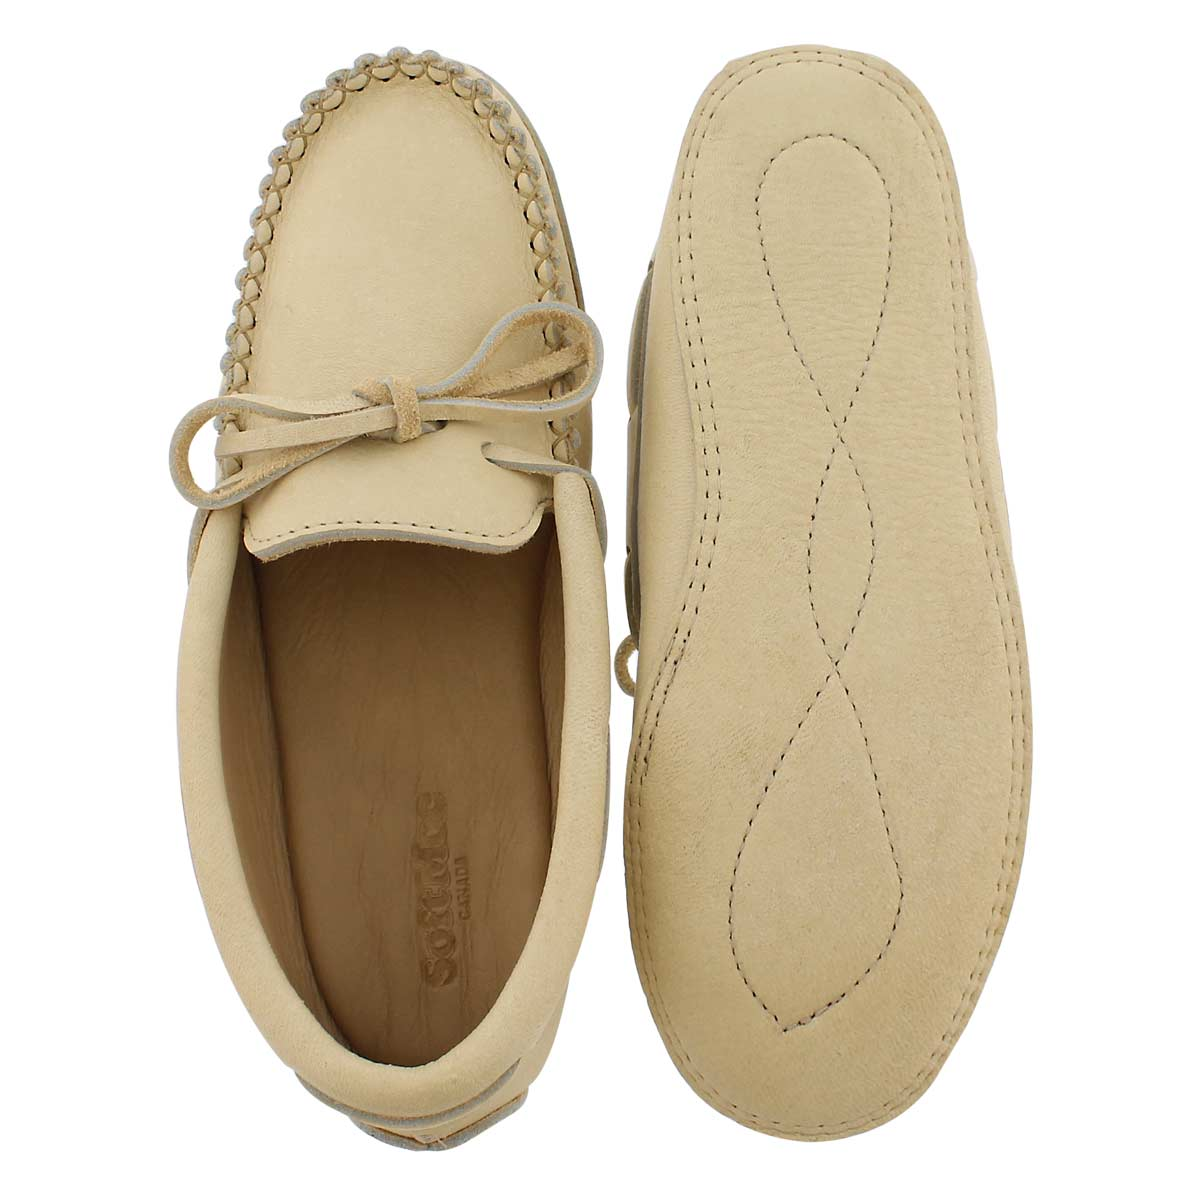 Mns natural caribou double sole moccasin